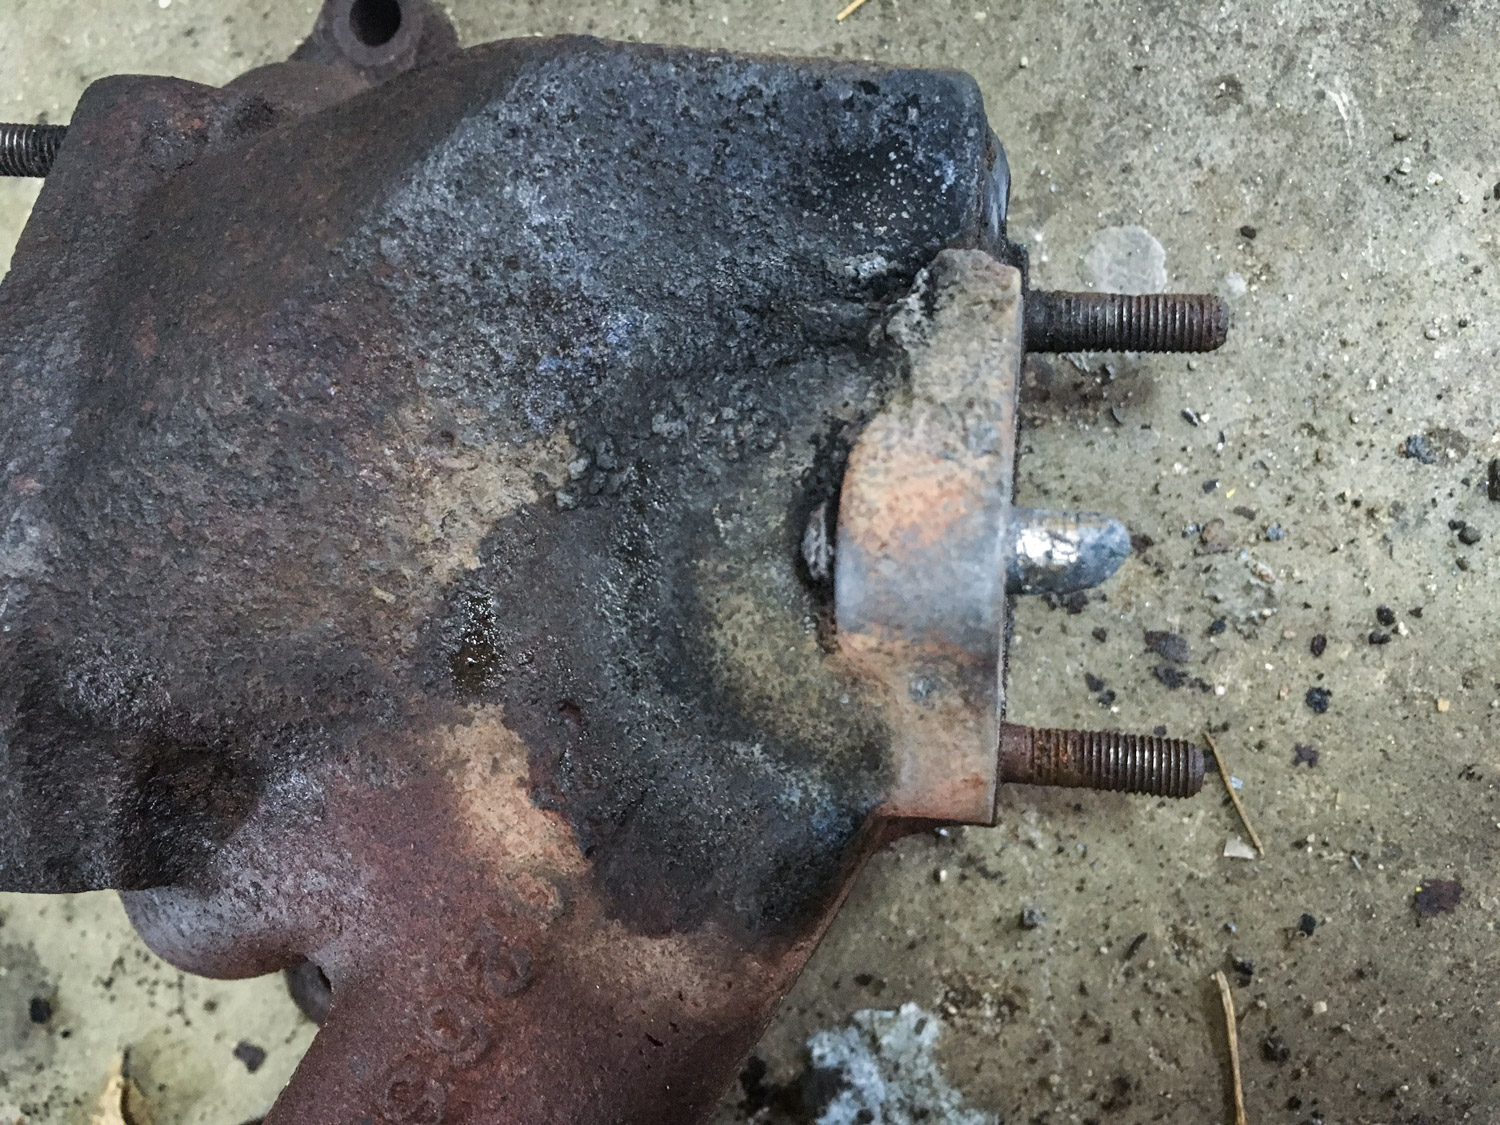 The snapped-off stud after multiple attempts at extraction.